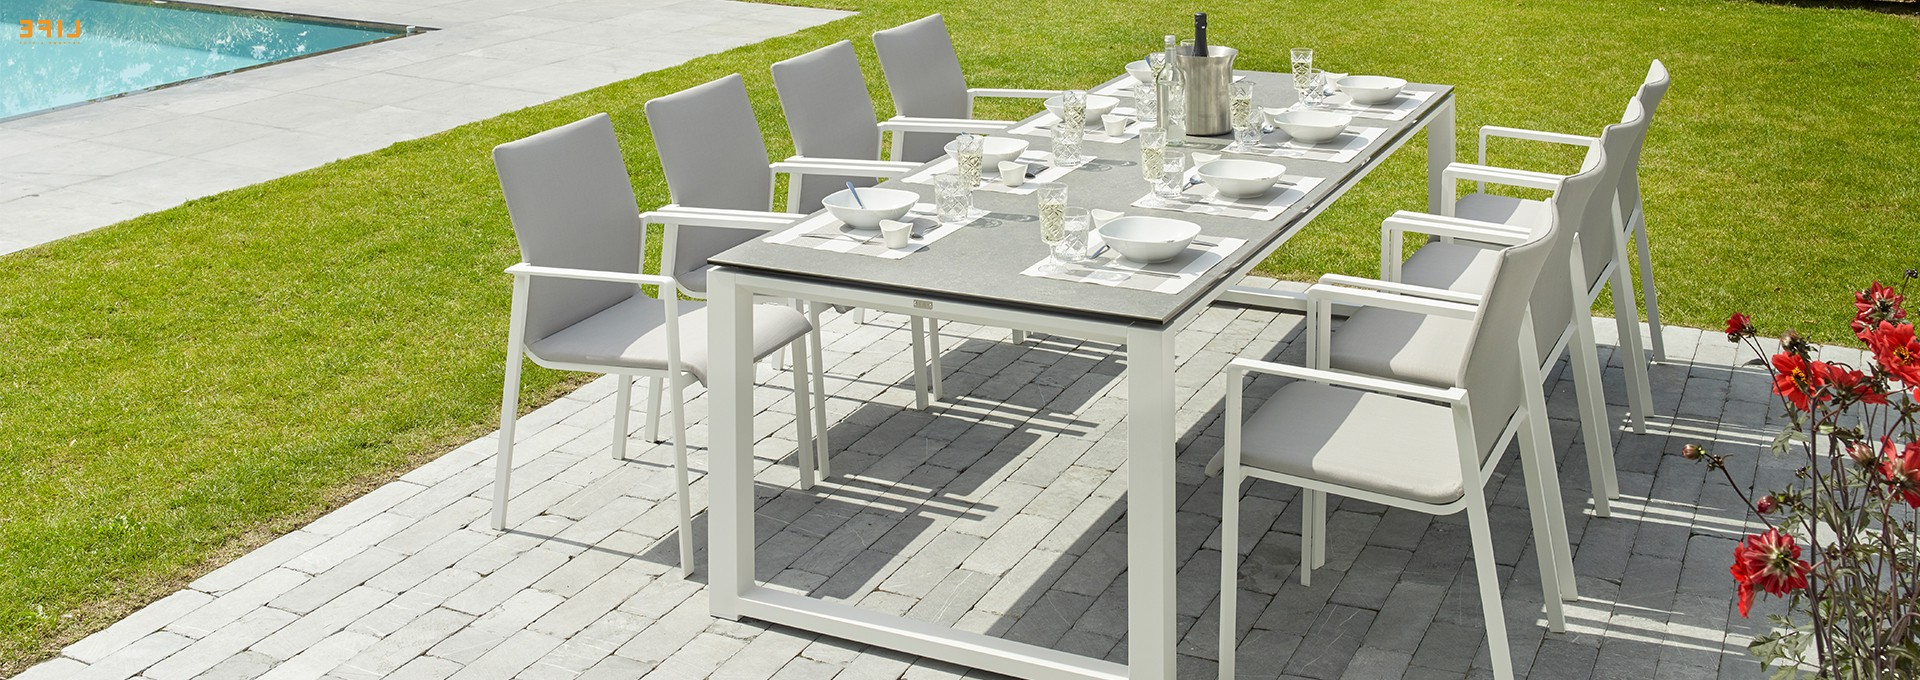 Newest Primavera Dining White – Life Outdoor Living With Regard To Osterman 6 Piece Extendable Dining Sets (Set Of 6) (View 10 of 25)